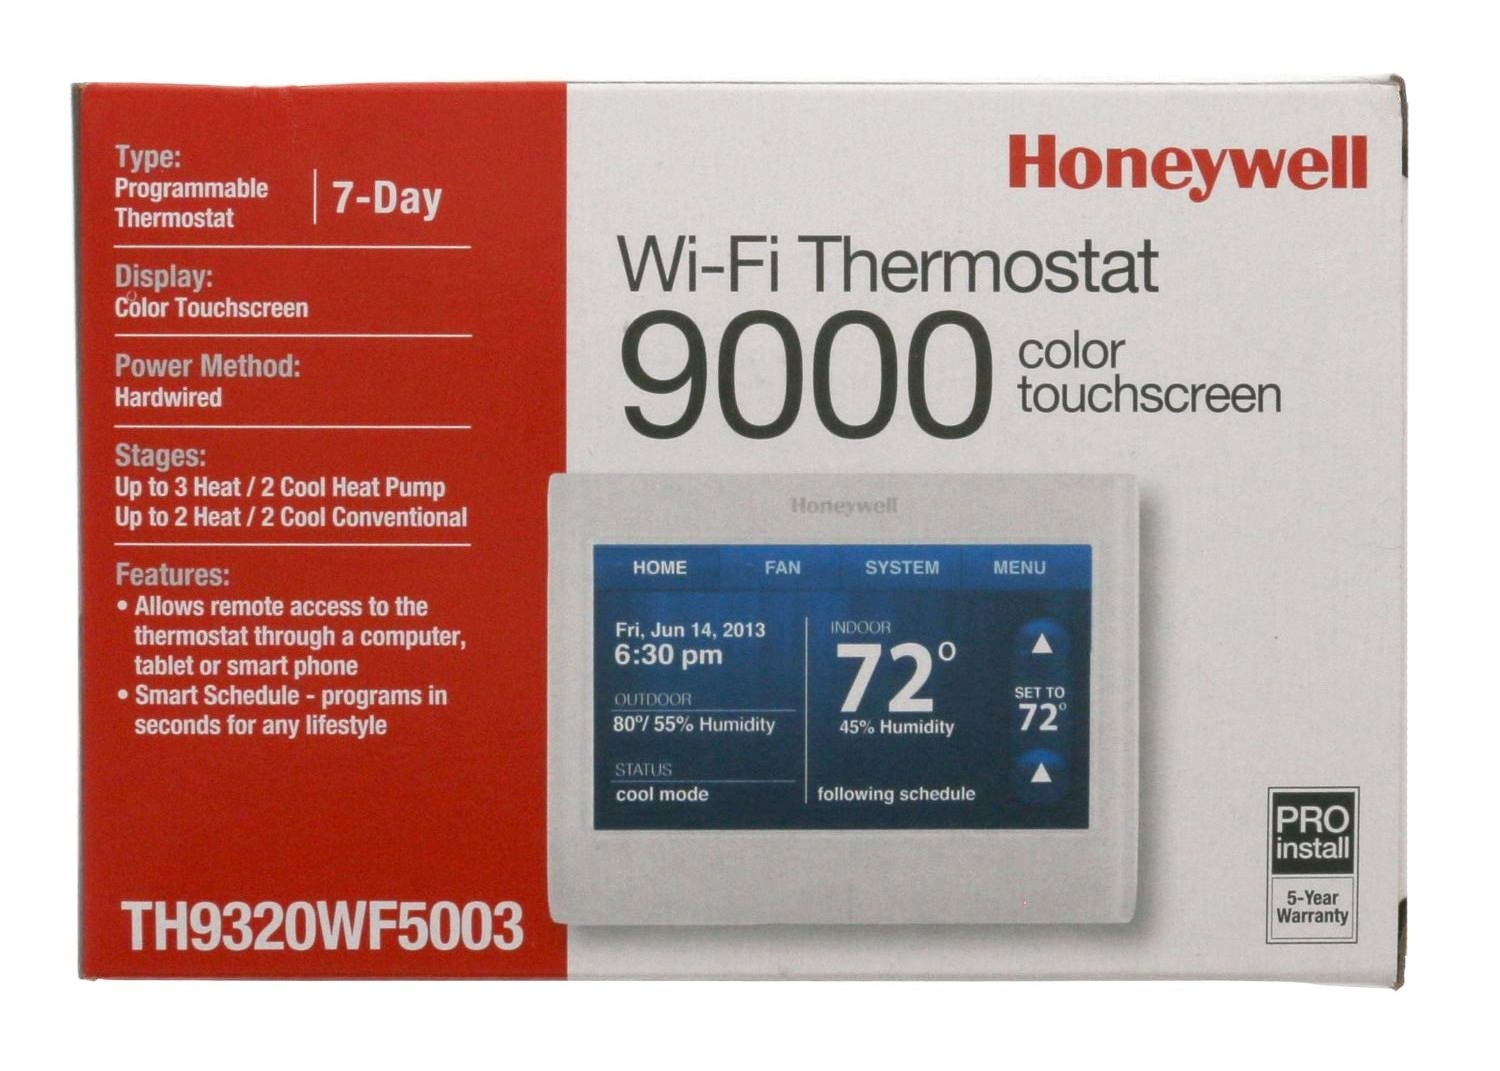 Honeywell TH9320WF5003 WiFi 9000 Color Touchscreen Thermostat, Works with  Alexa - Programmable Household Thermostats - Amazon.com